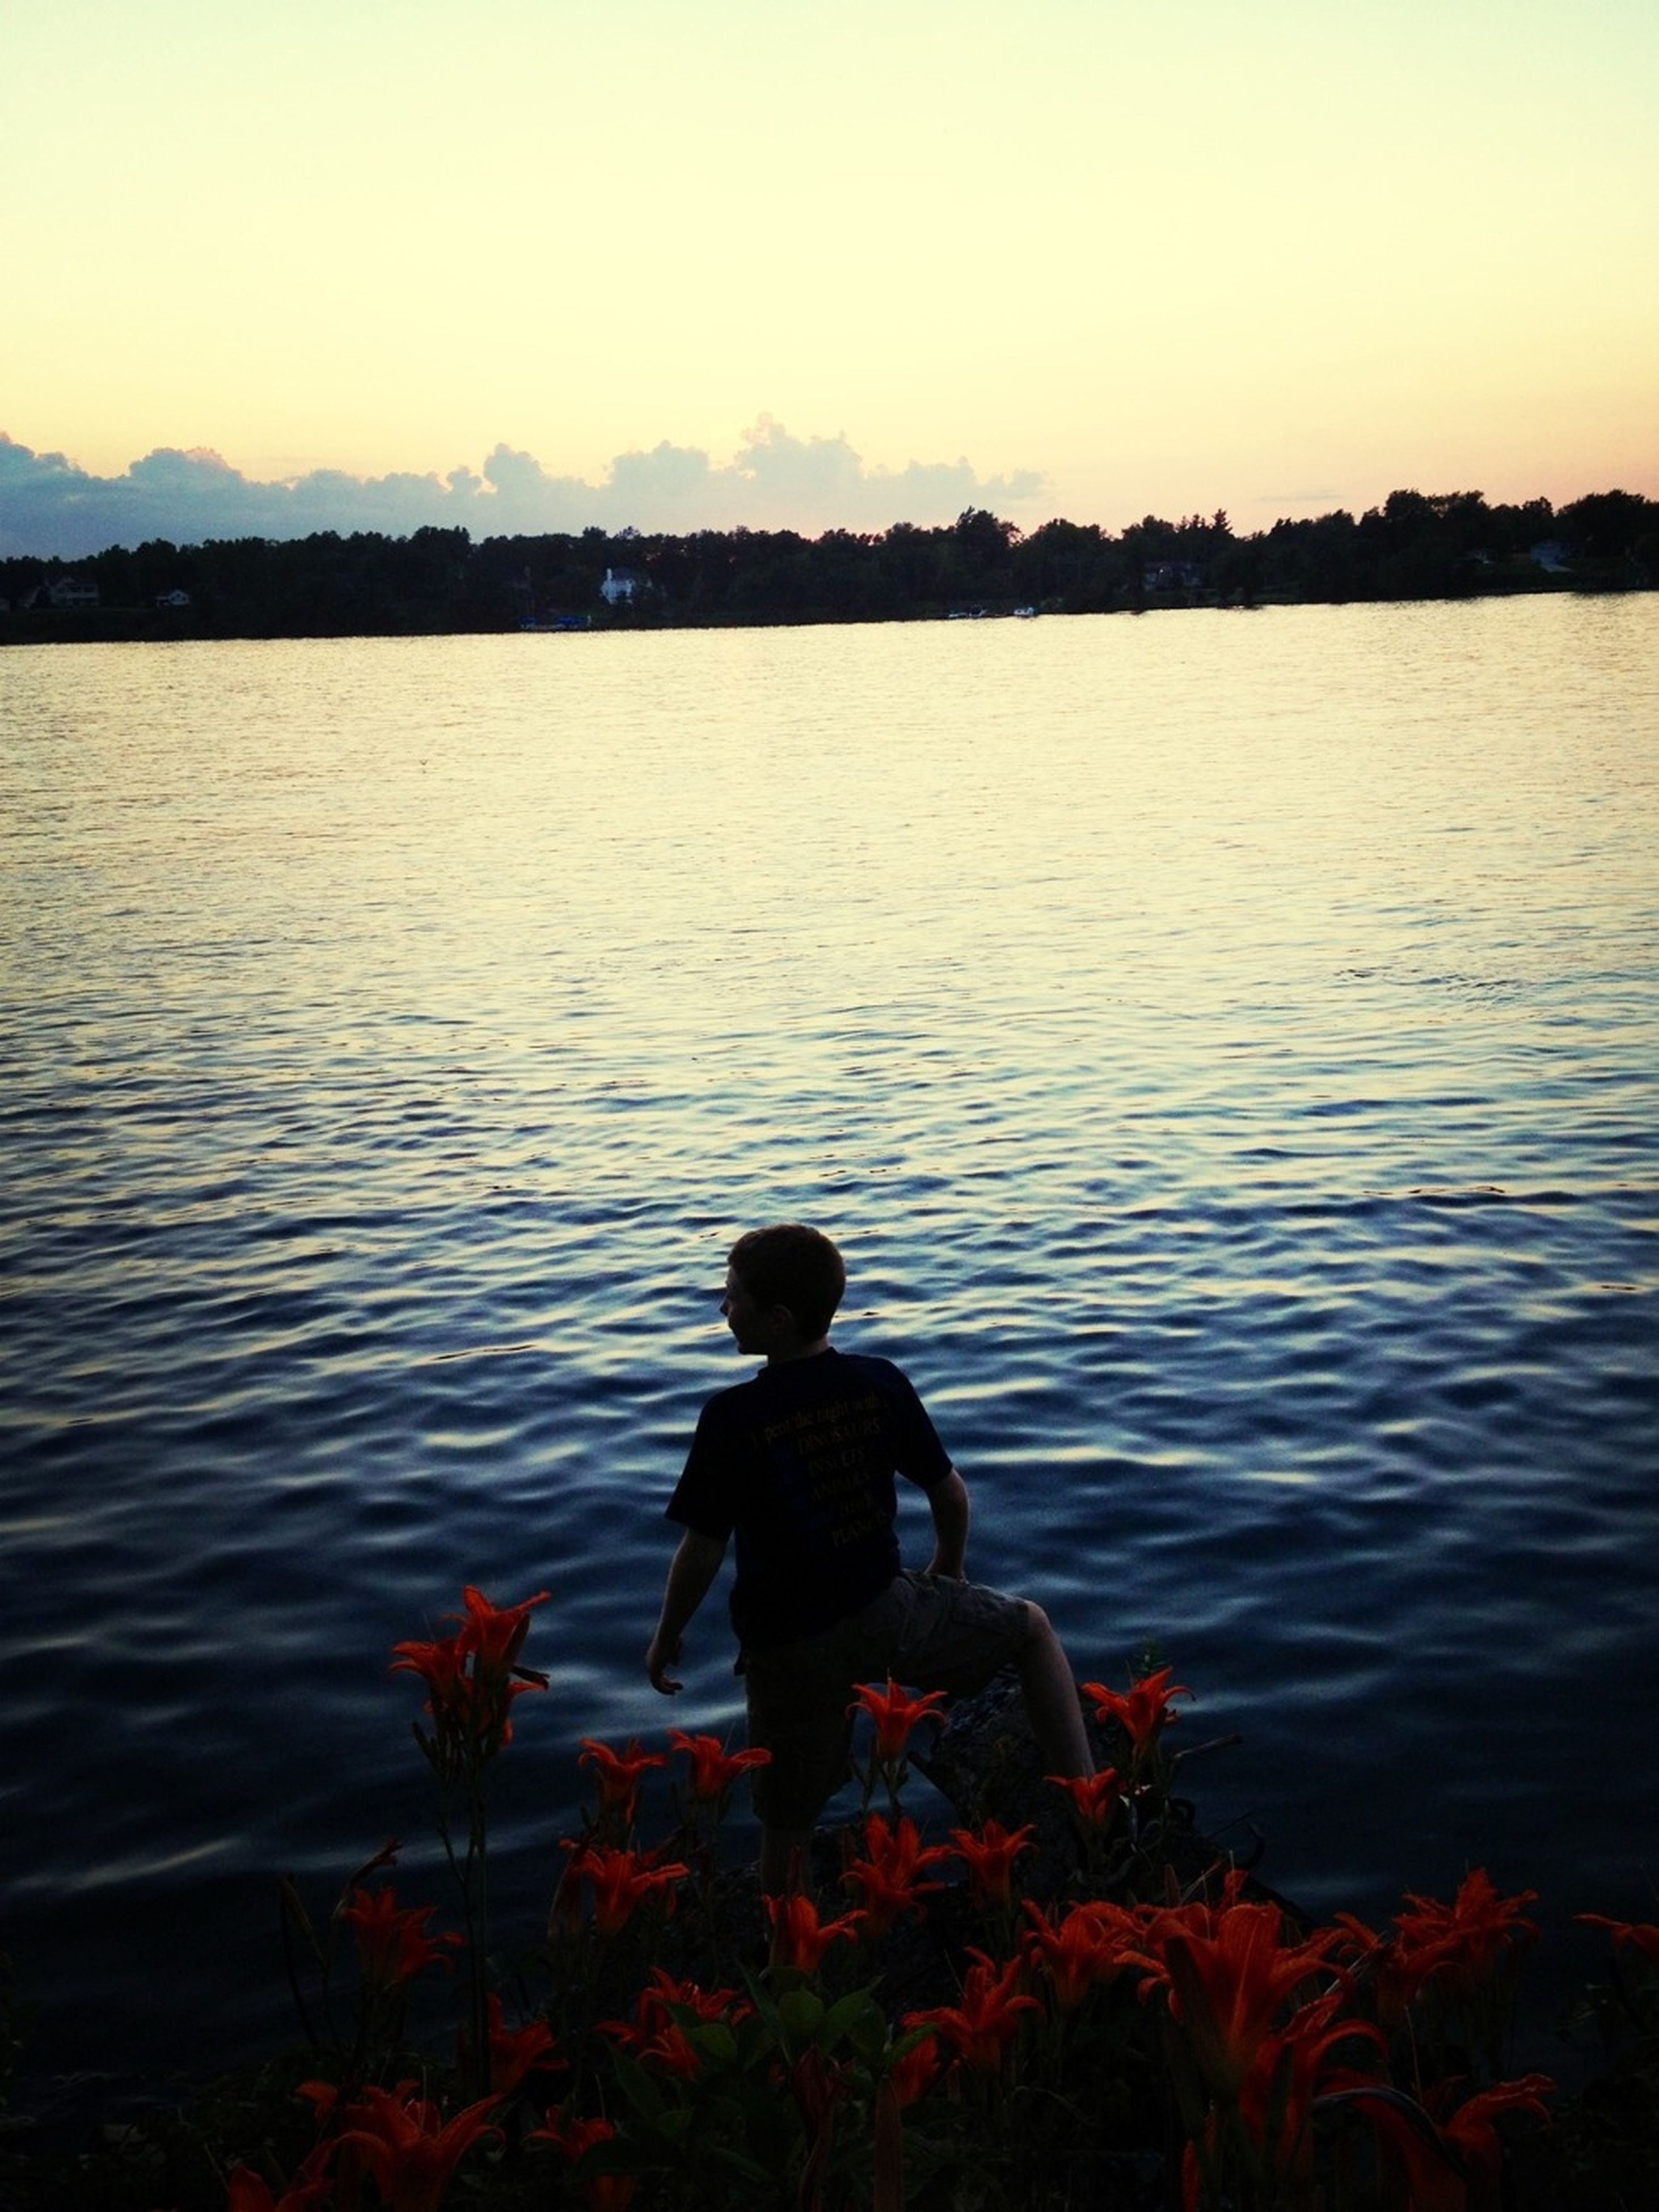 water, sunset, rear view, lake, lifestyles, tranquil scene, leisure activity, beauty in nature, scenics, tranquility, men, standing, nature, clear sky, silhouette, orange color, rippled, idyllic